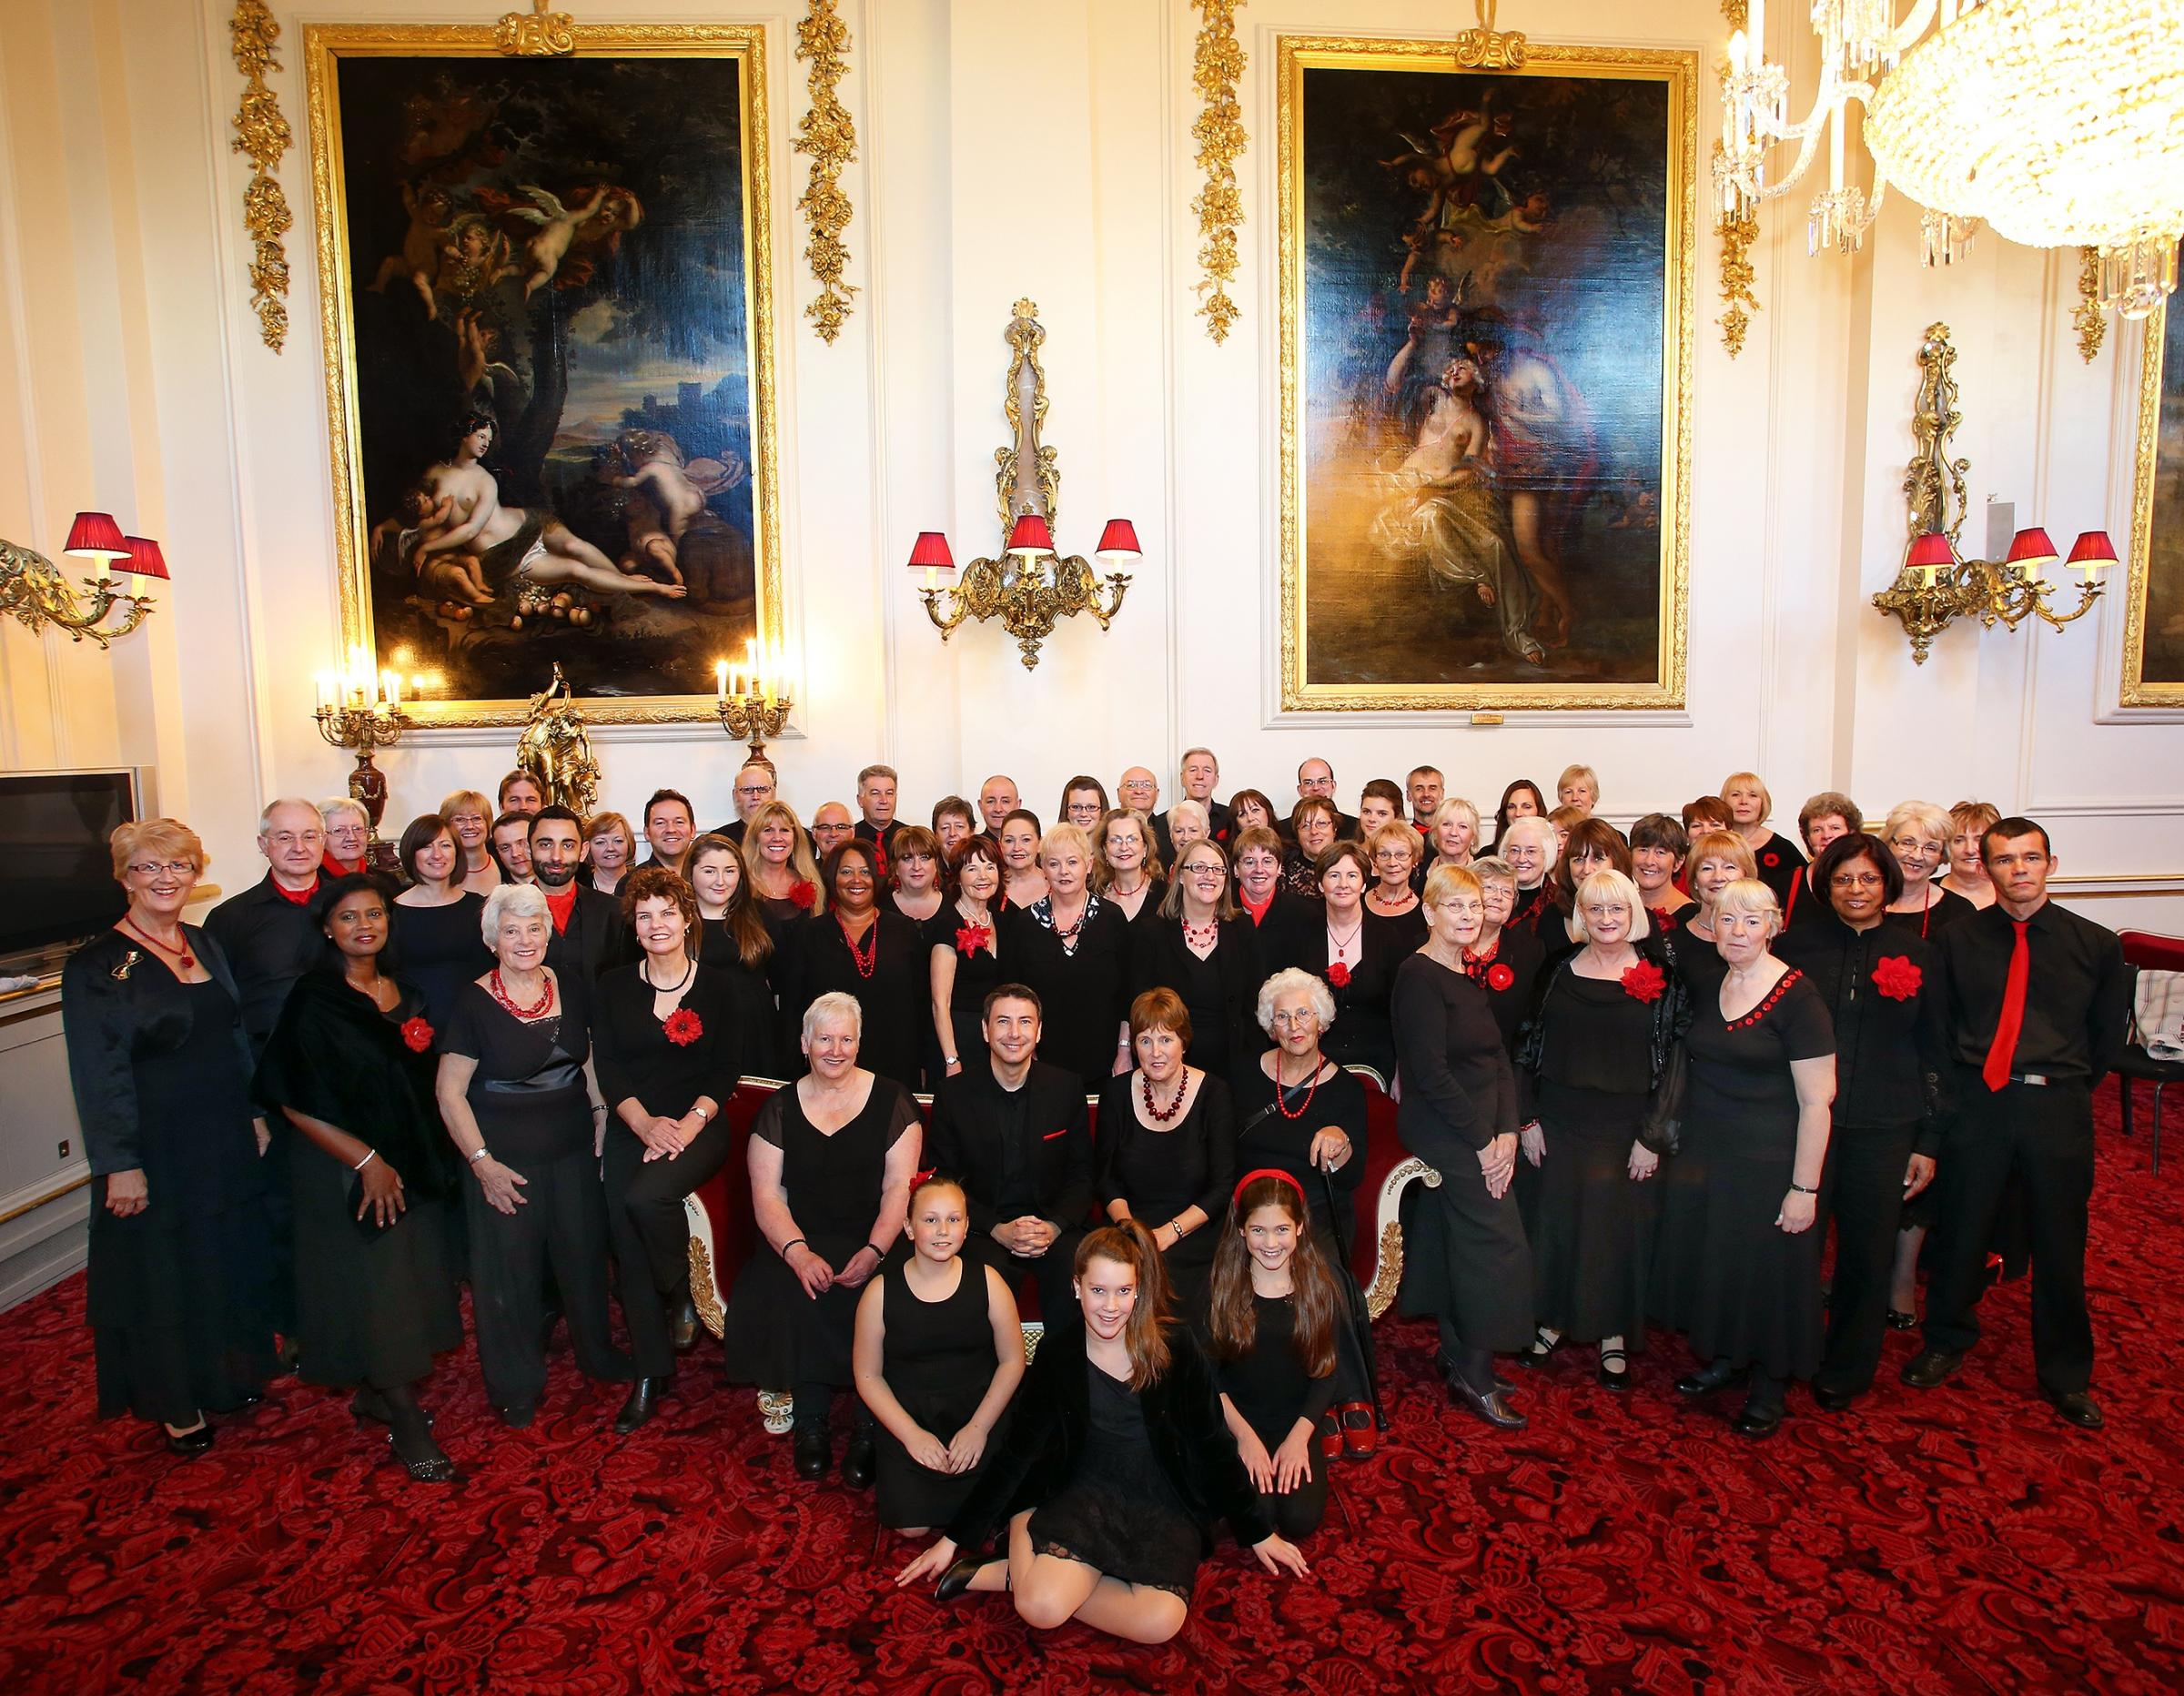 The Royal Opera House Thurrock Community Chorus